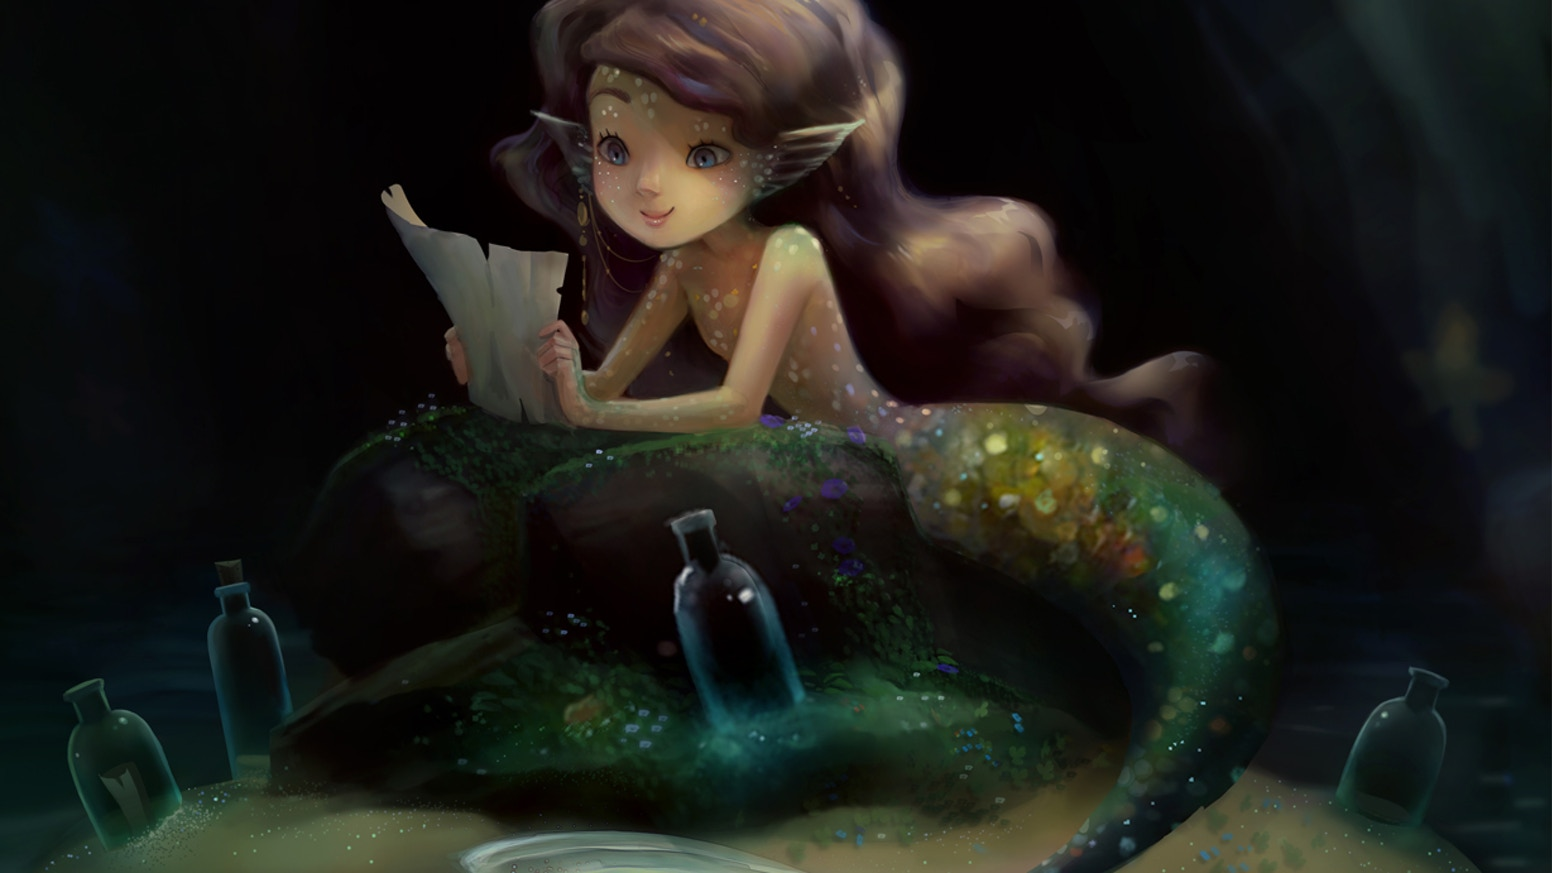 Explore the secrets of magic & fantasy in the underwater realm below. Illustrated art book by Marisa Erven and Heather Gross.